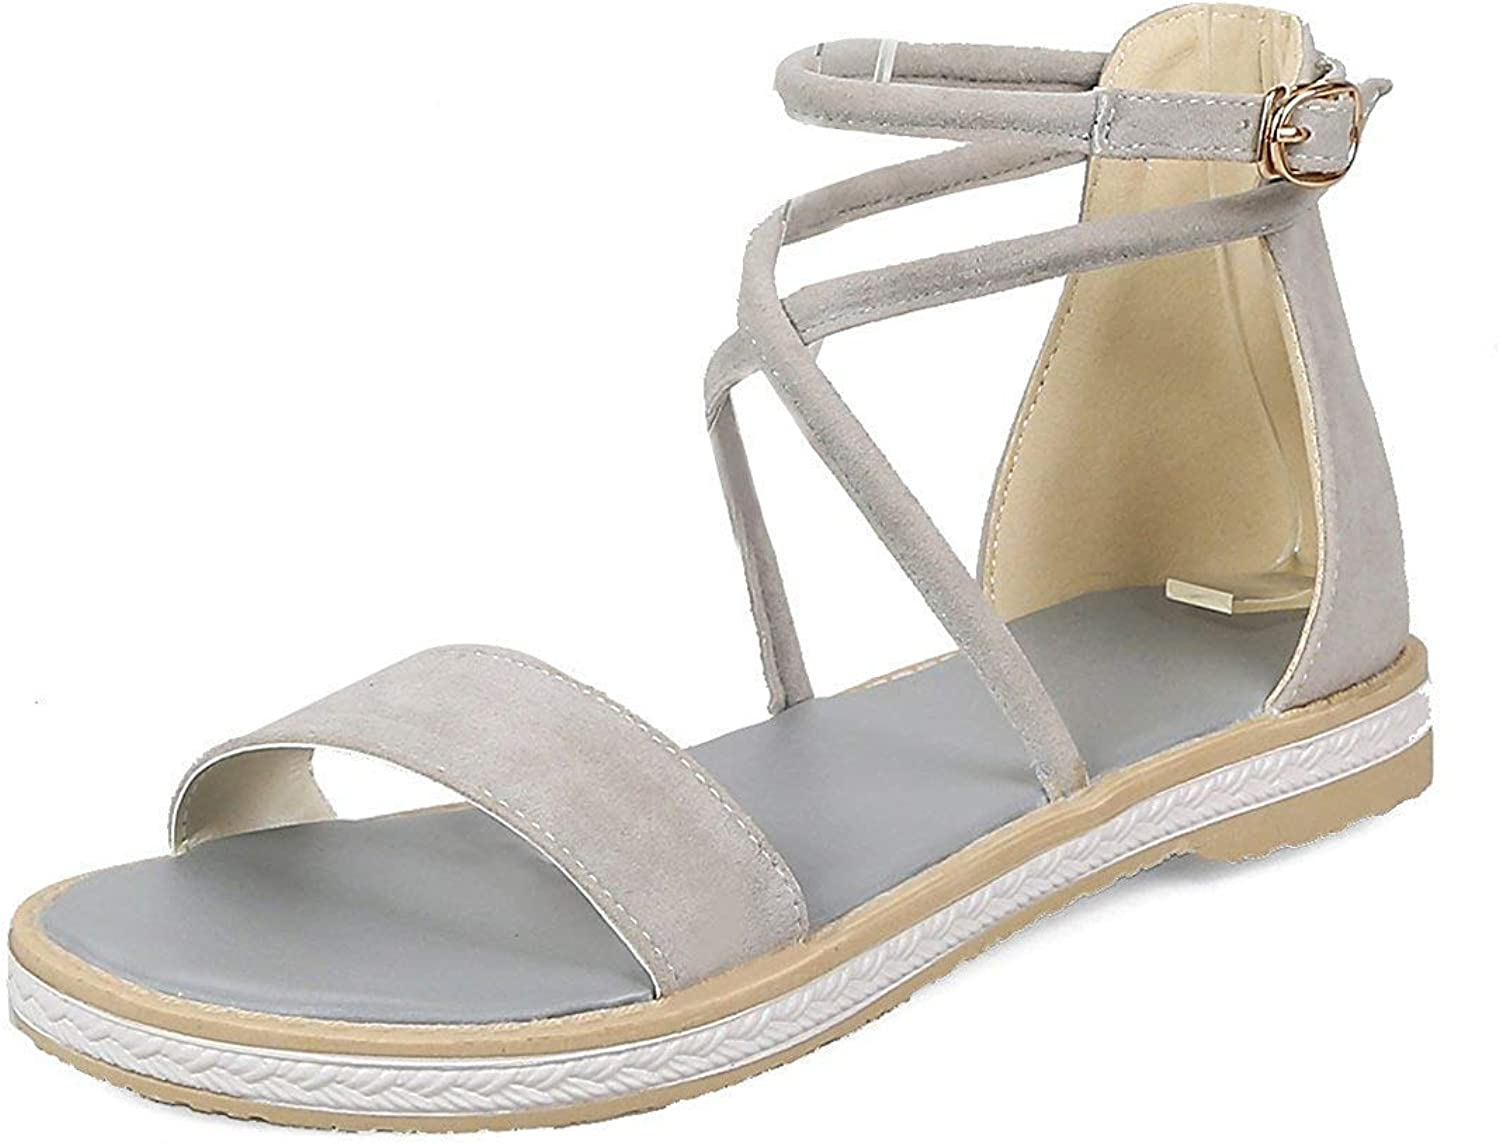 Unm Women's Strappy Flat Sandals with Ankle Strap - Open Toe Buckled - Comfort Casual